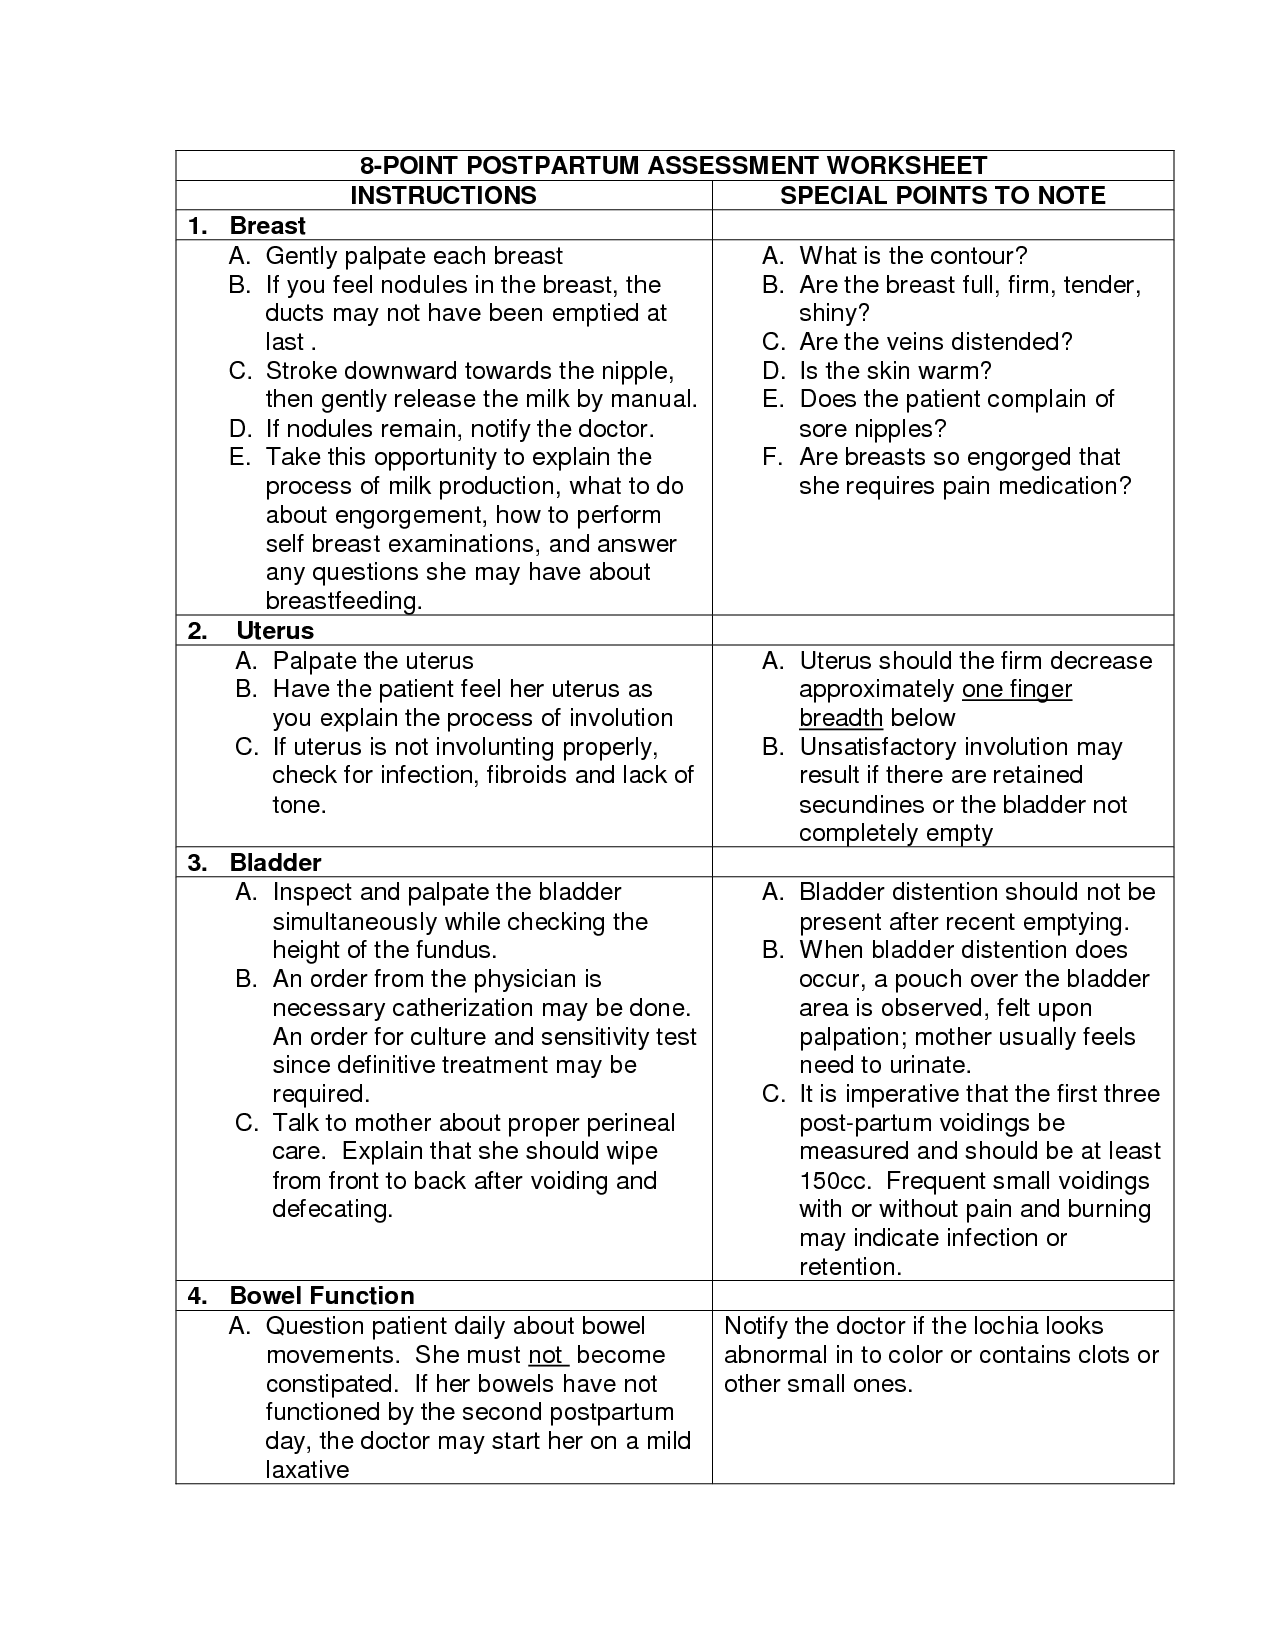 Postpartum Nursing Worksheet